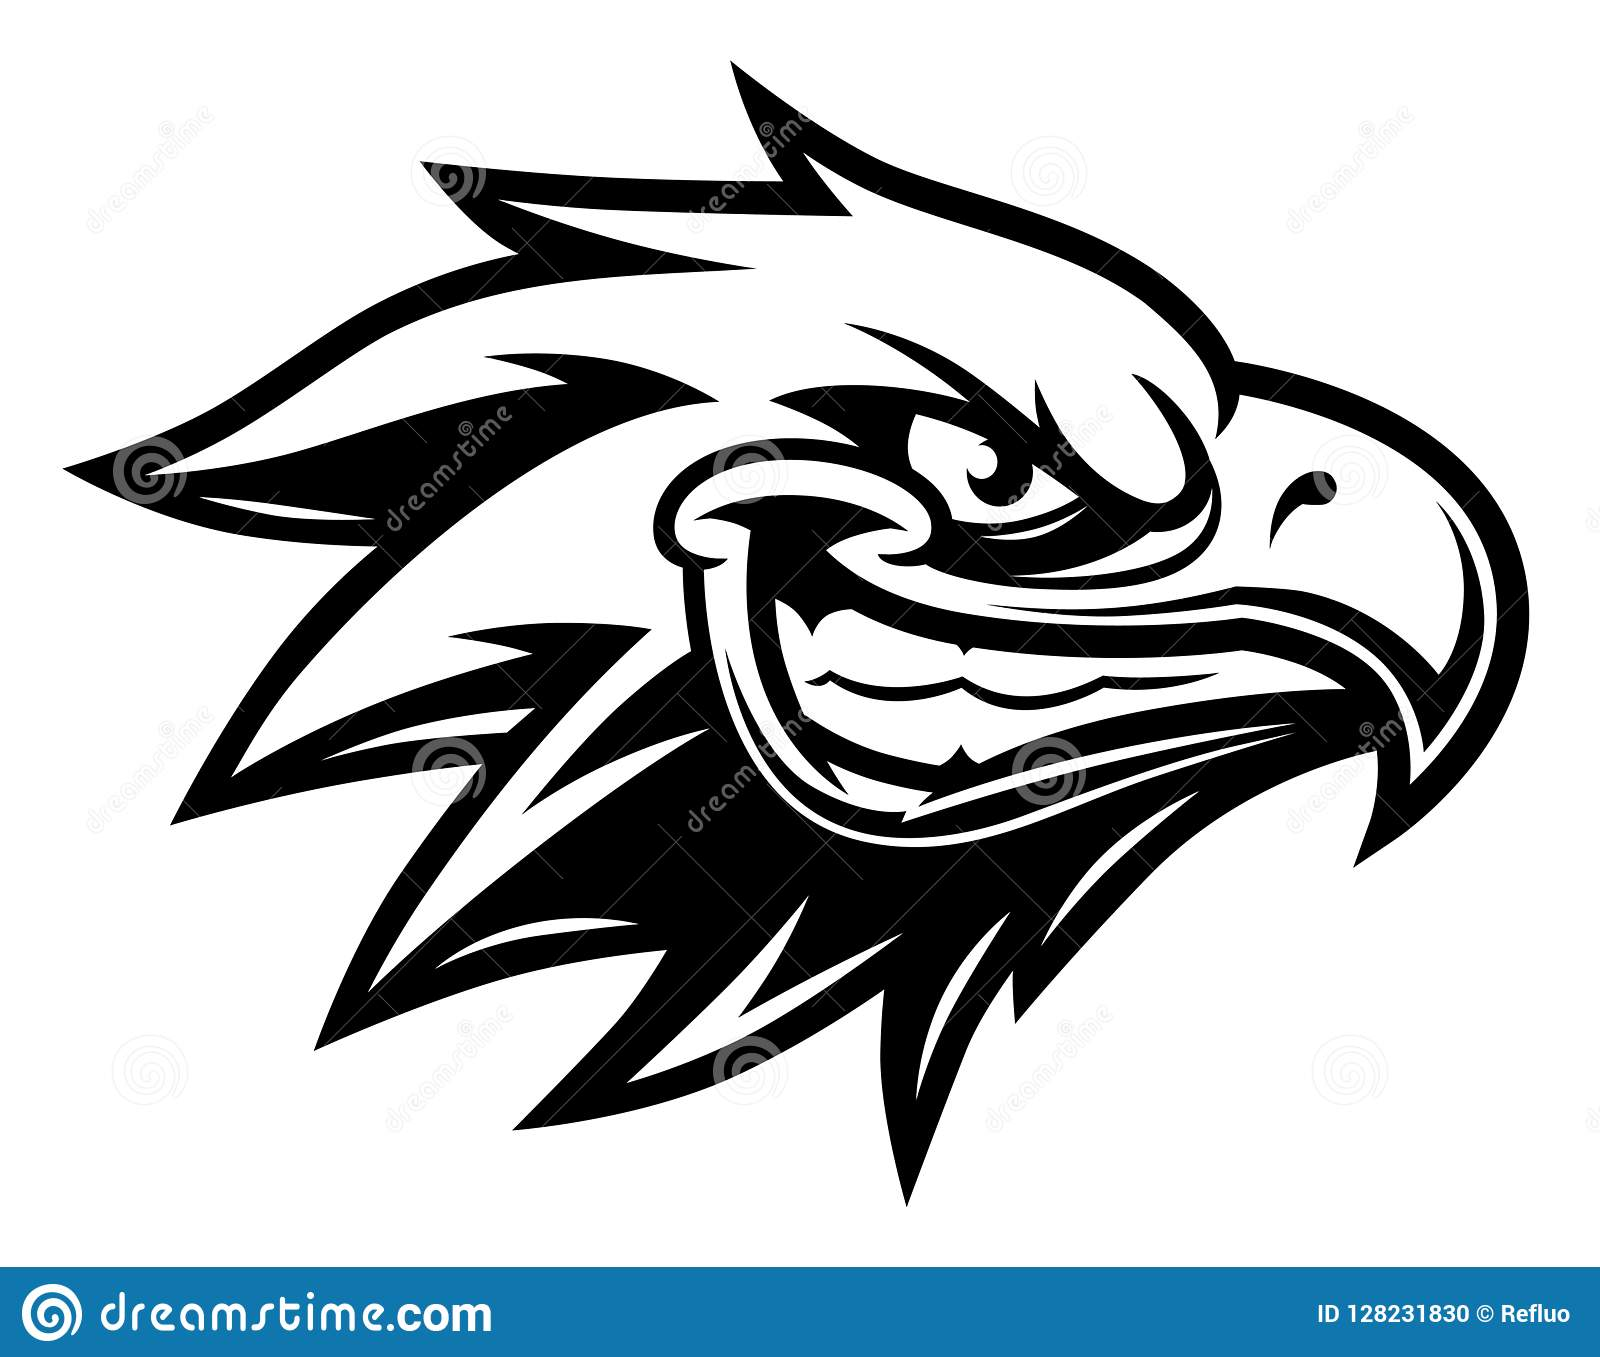 Monochrome cartoon eagle head on the white background